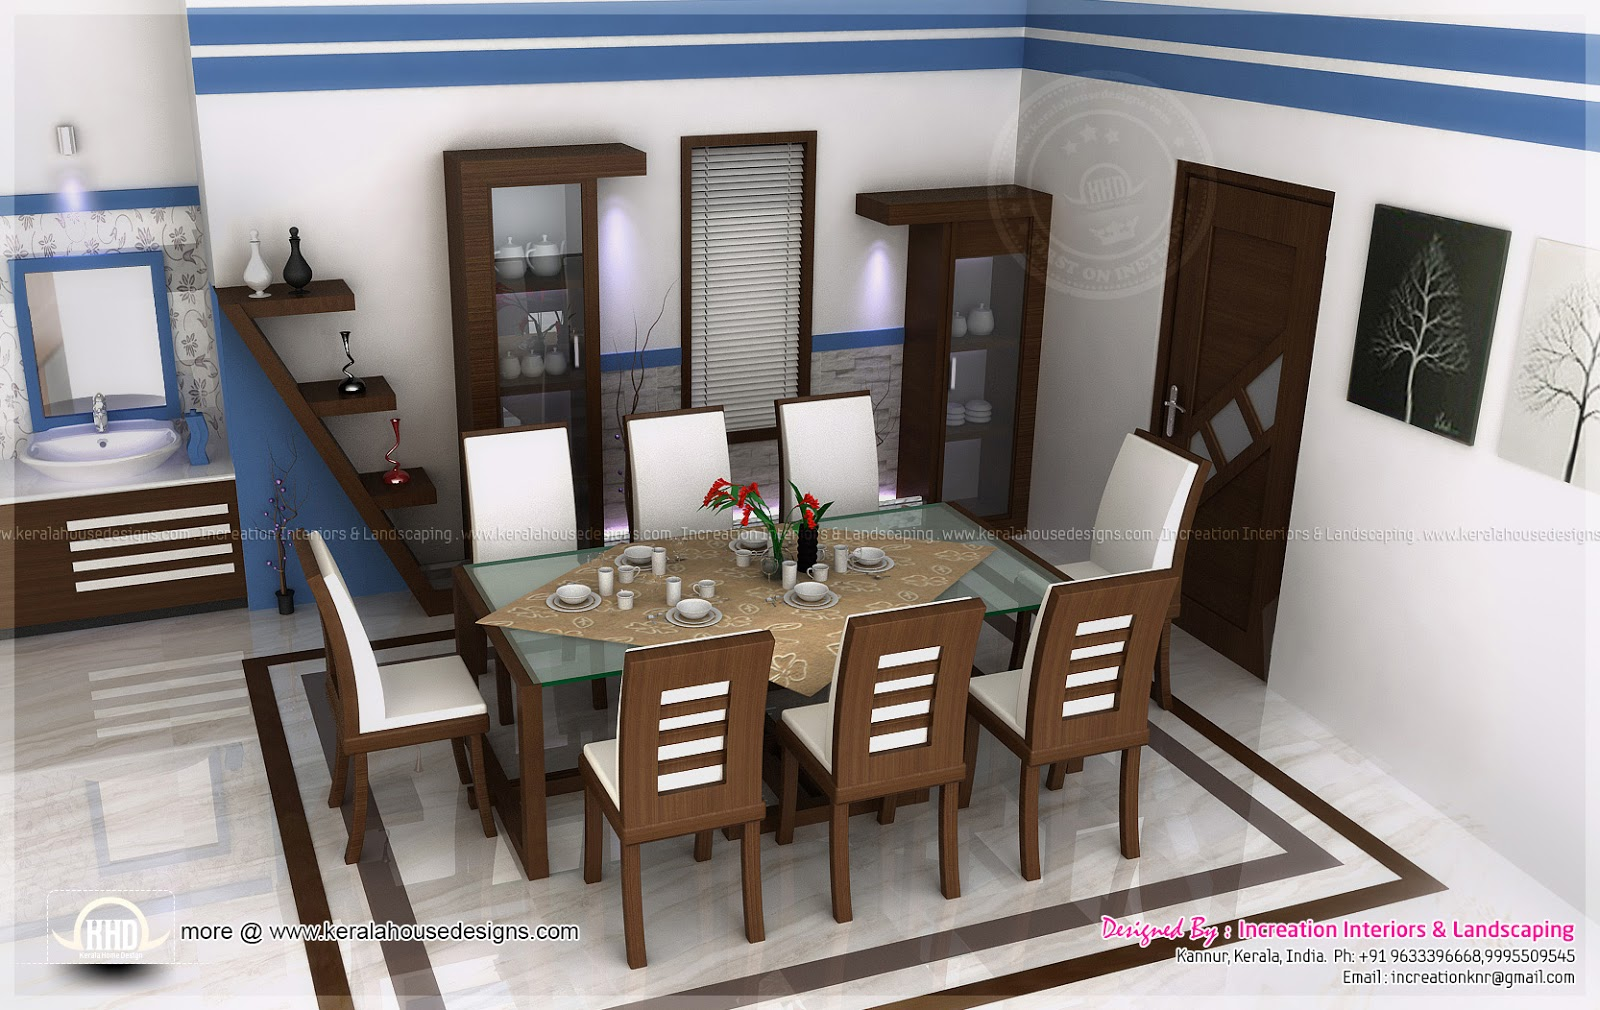 House interior ideas in 3d rendering kerala home design for Interior design plans for houses